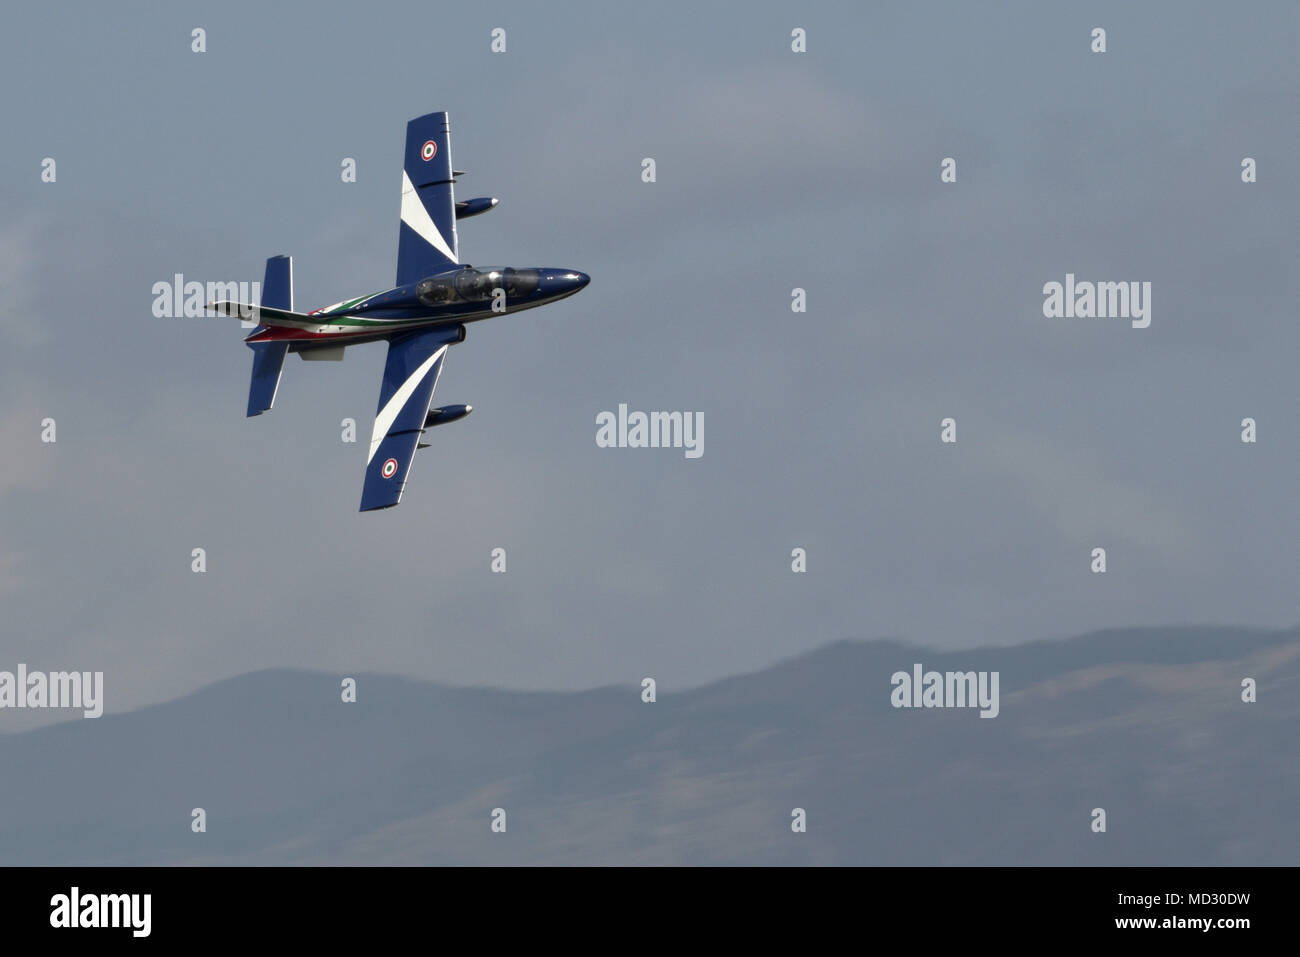 The Italian air force Frecce Tricolori 'Tricolor Arrows' aerobatics team soars over Aviano Air Base, Italy, during an air demonstration for an Italian and American audience on April 16, 2018. The team fly in an Aermacchi MB-339-A/PAN fighter-trainer aircraft performing aerial acrobatics, showing off their colors and expertise. (U.S. Air Force photo by Airman 1st Class Benjamin Cooper) - Stock Image